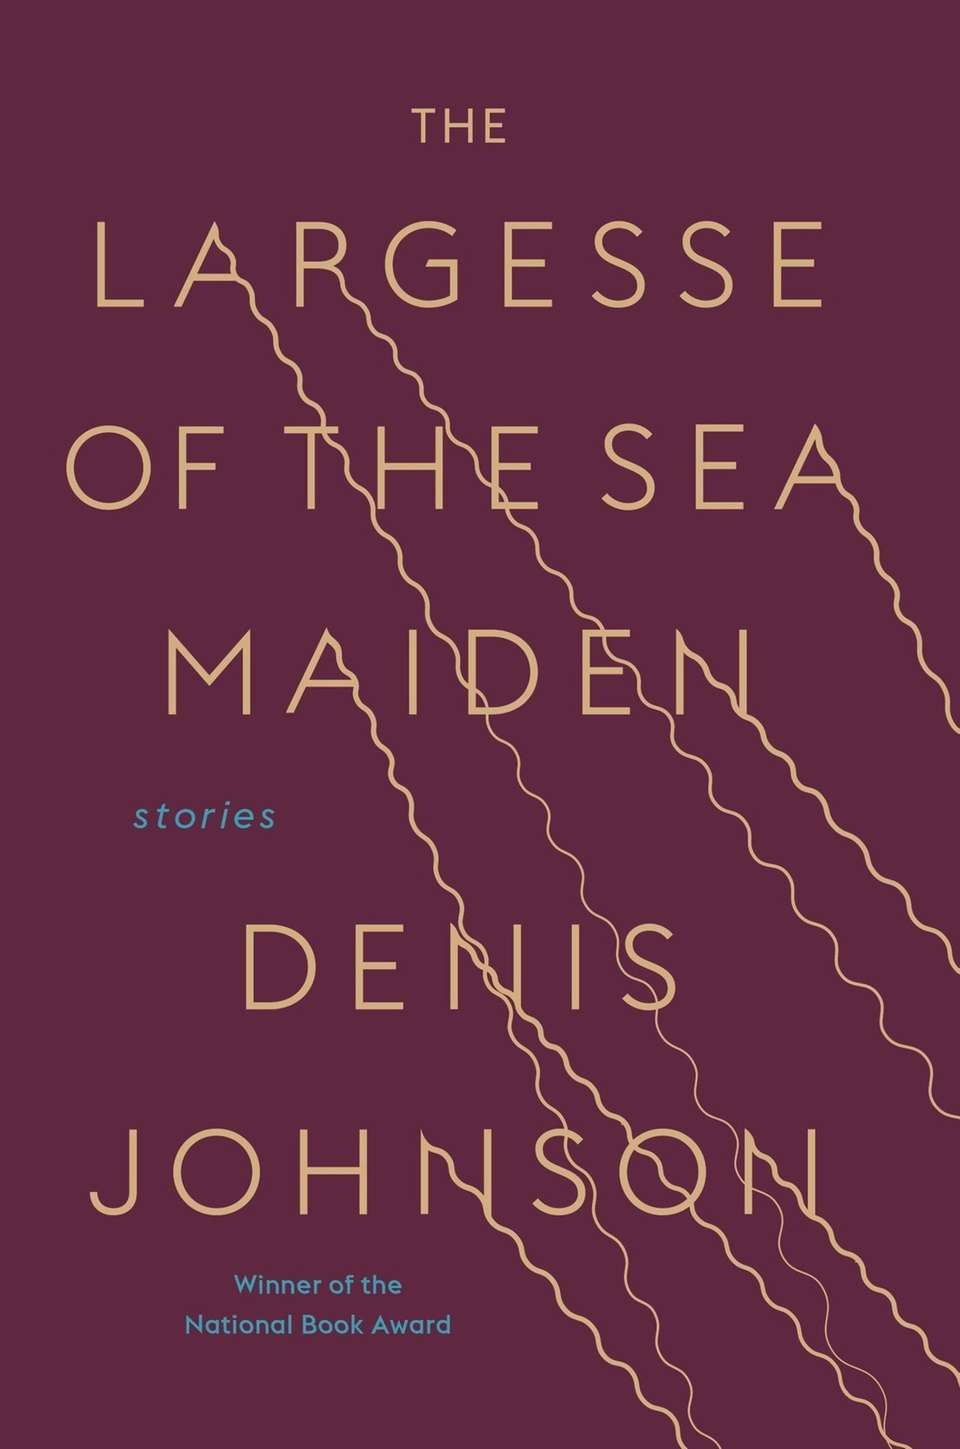 This story collection from Johnson, who died of